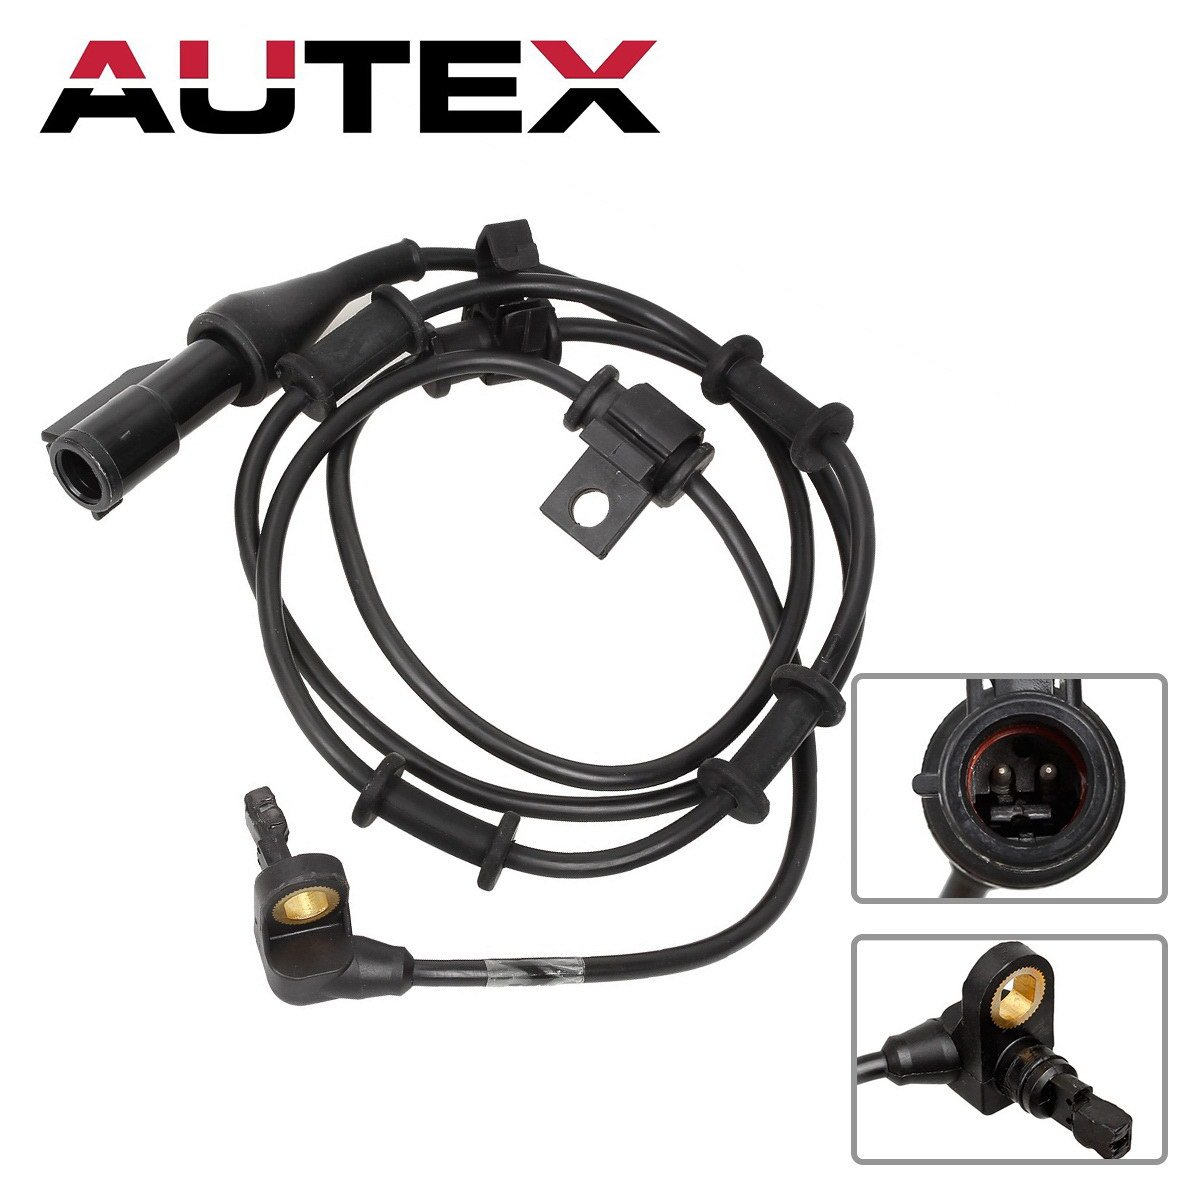 AUTEX ALS528 ABS Wheel Speed Sensor Front compatible with 2003 2004 2005 2006 Ford Expedition Lincoln Navigator